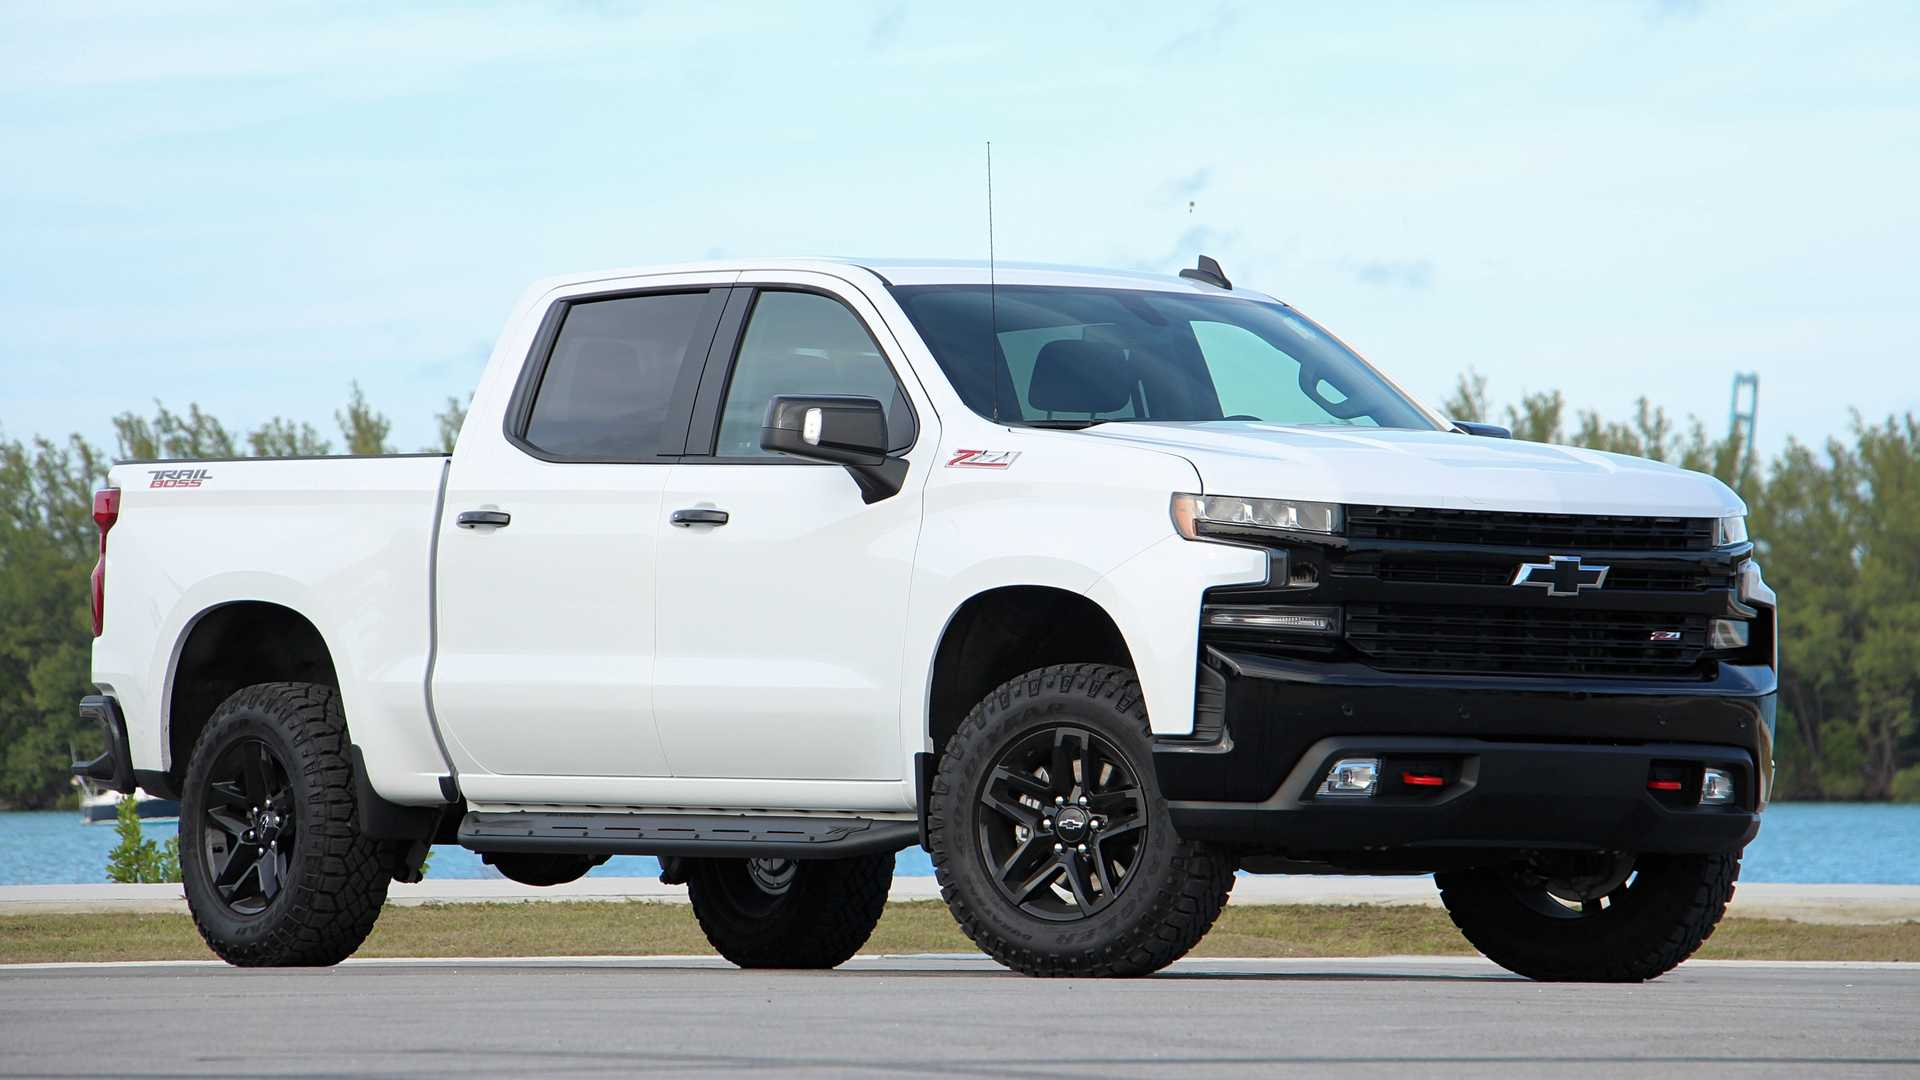 18 Great New 2019 Chevrolet Silverado Work Truck Concept Redesign And Review Spy Shoot with New 2019 Chevrolet Silverado Work Truck Concept Redesign And Review